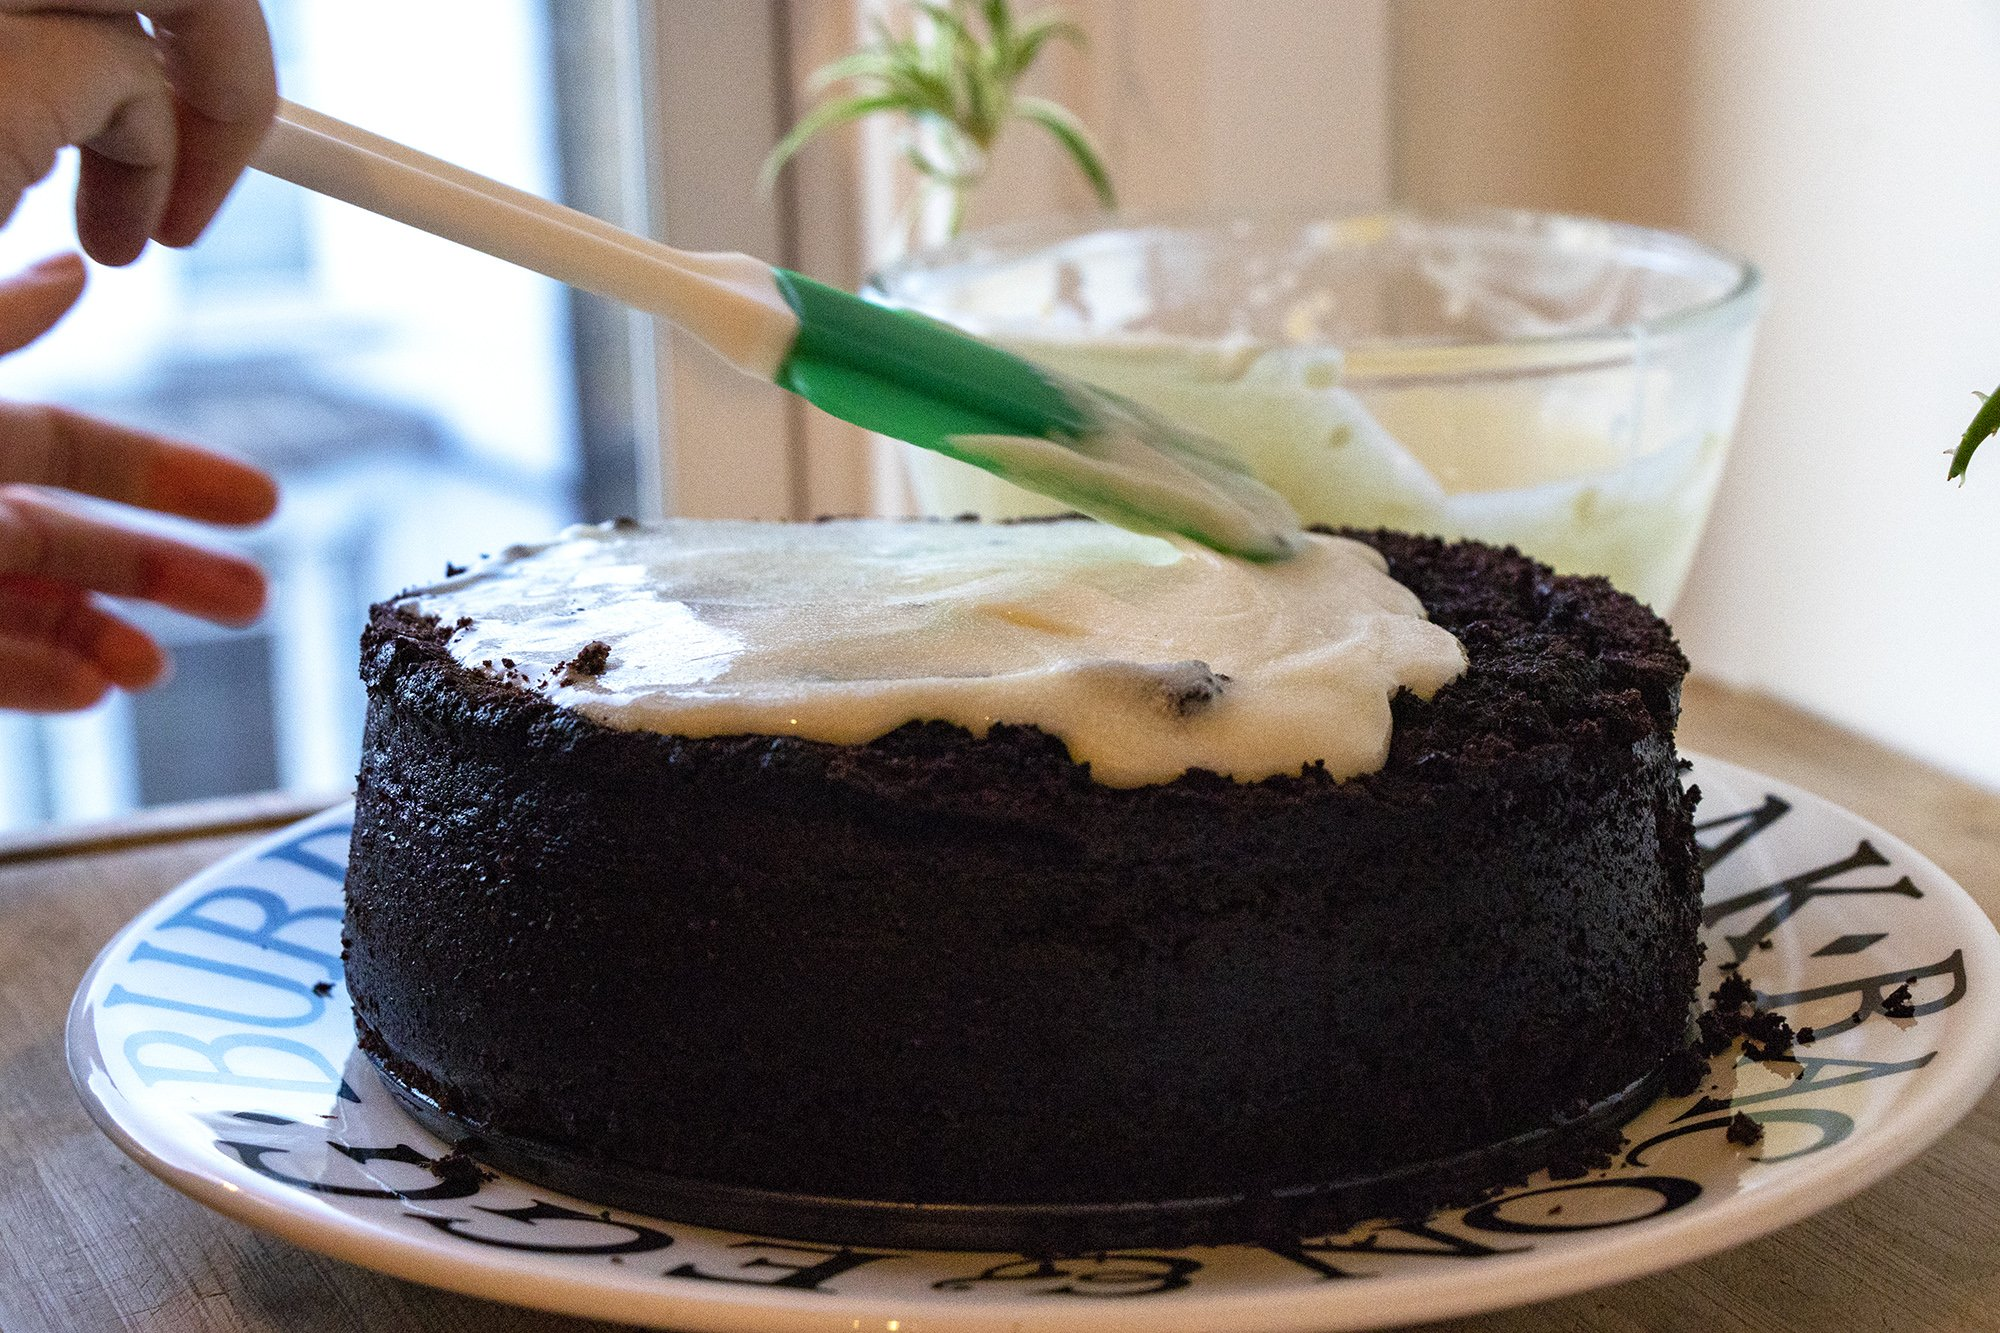 Spreading chocolate Guinness cake topping